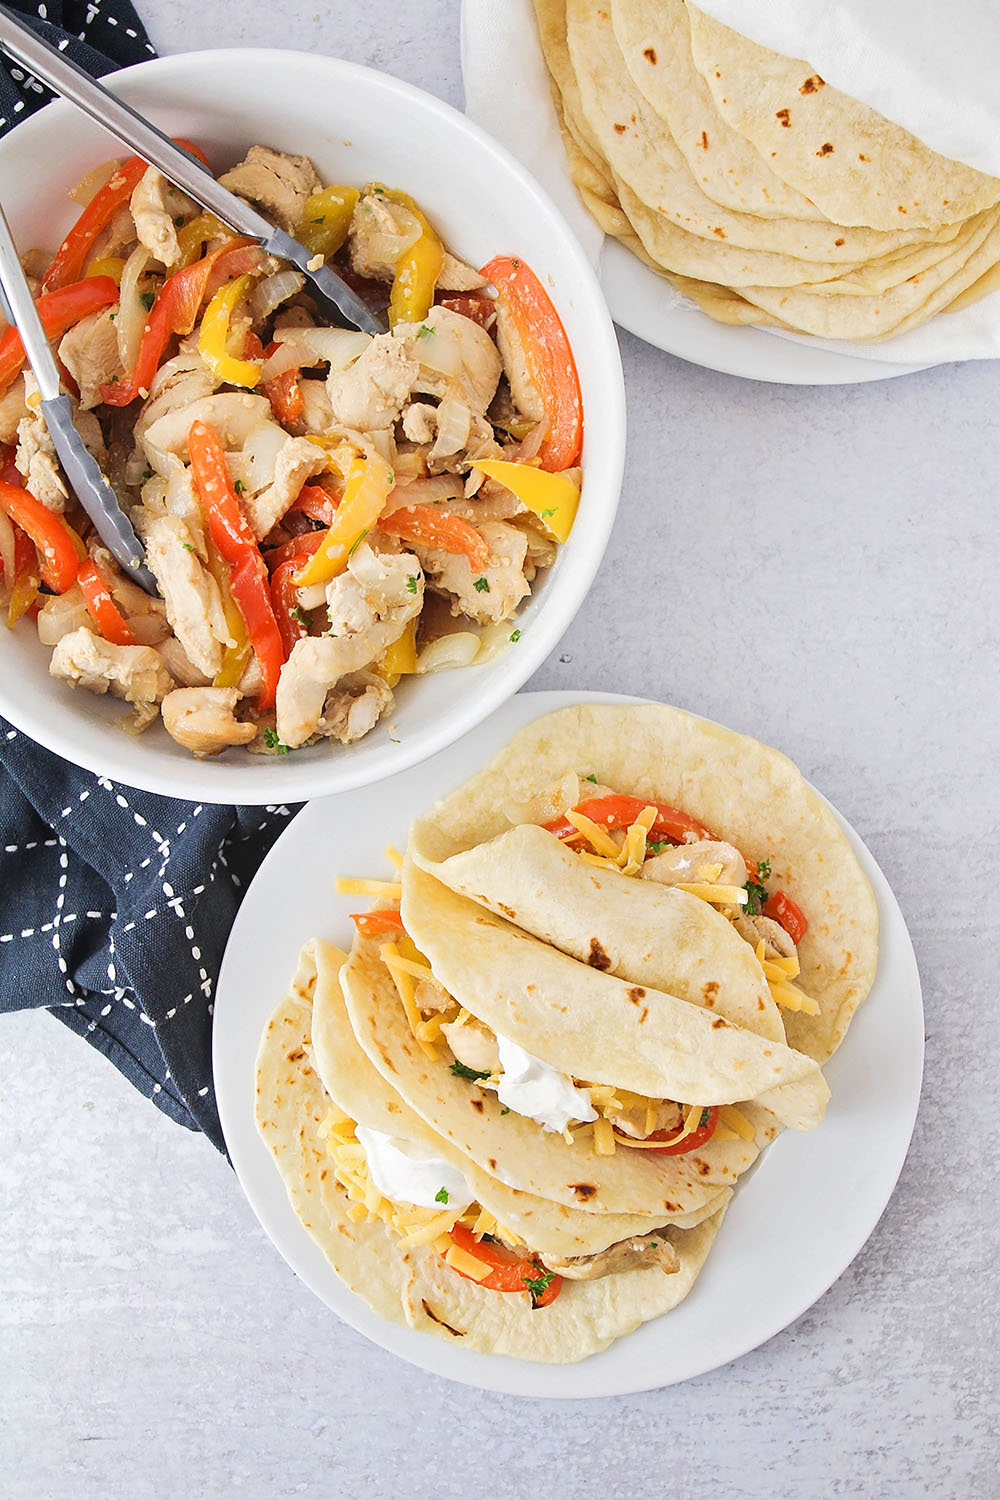 These sheet pan chicken fajitas are simple to make, and bursting with delicious flavors. It's an easy weeknight meal that's sure to please!